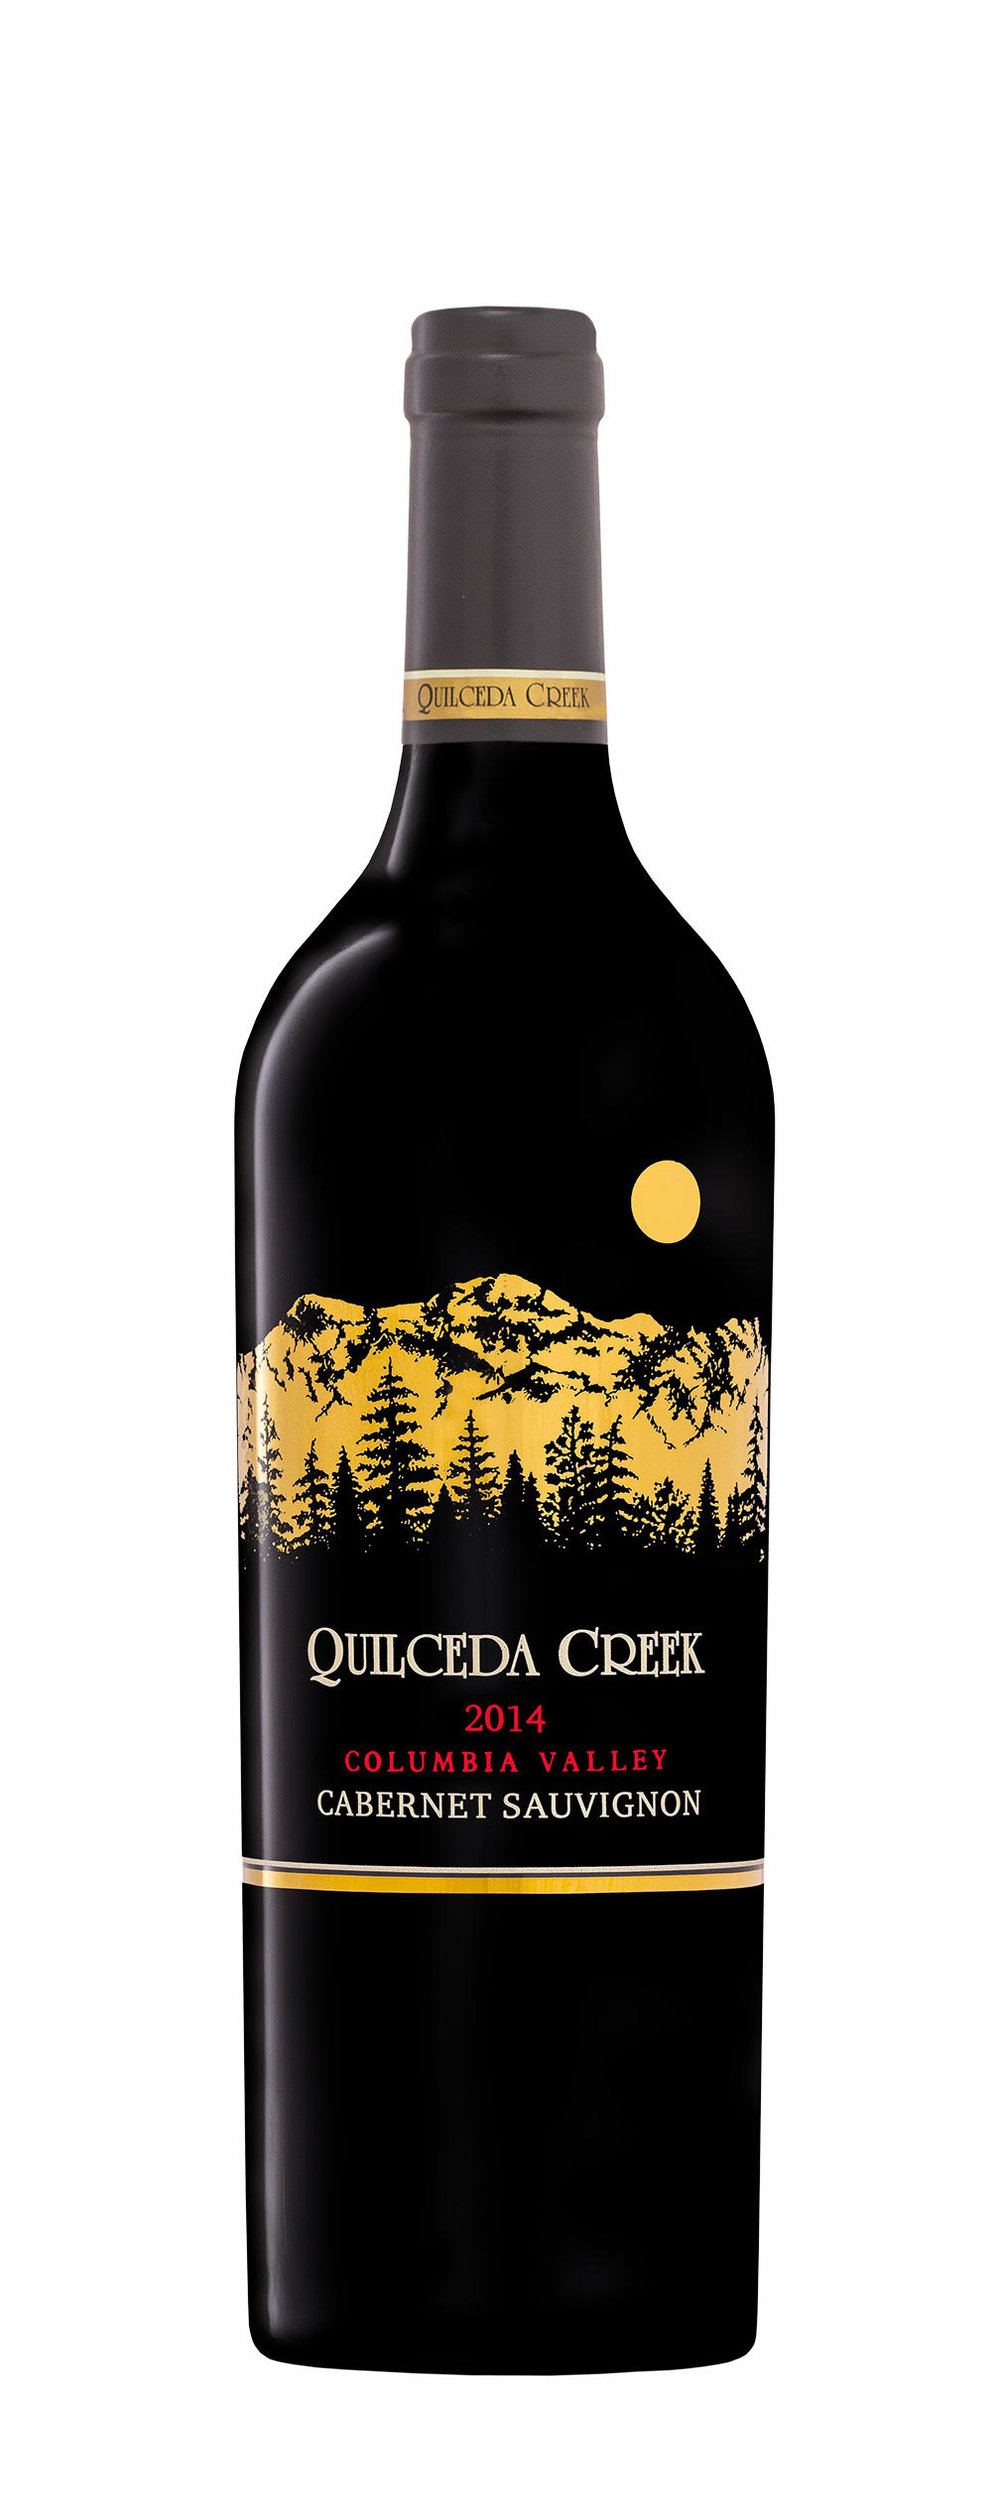 022b73f1d 2014 Quilceda Creek  Columbia Valley  Cabernet- This 100% Cabernet wine was  aged for 21 months in new French oak and was sourced from the Champoux